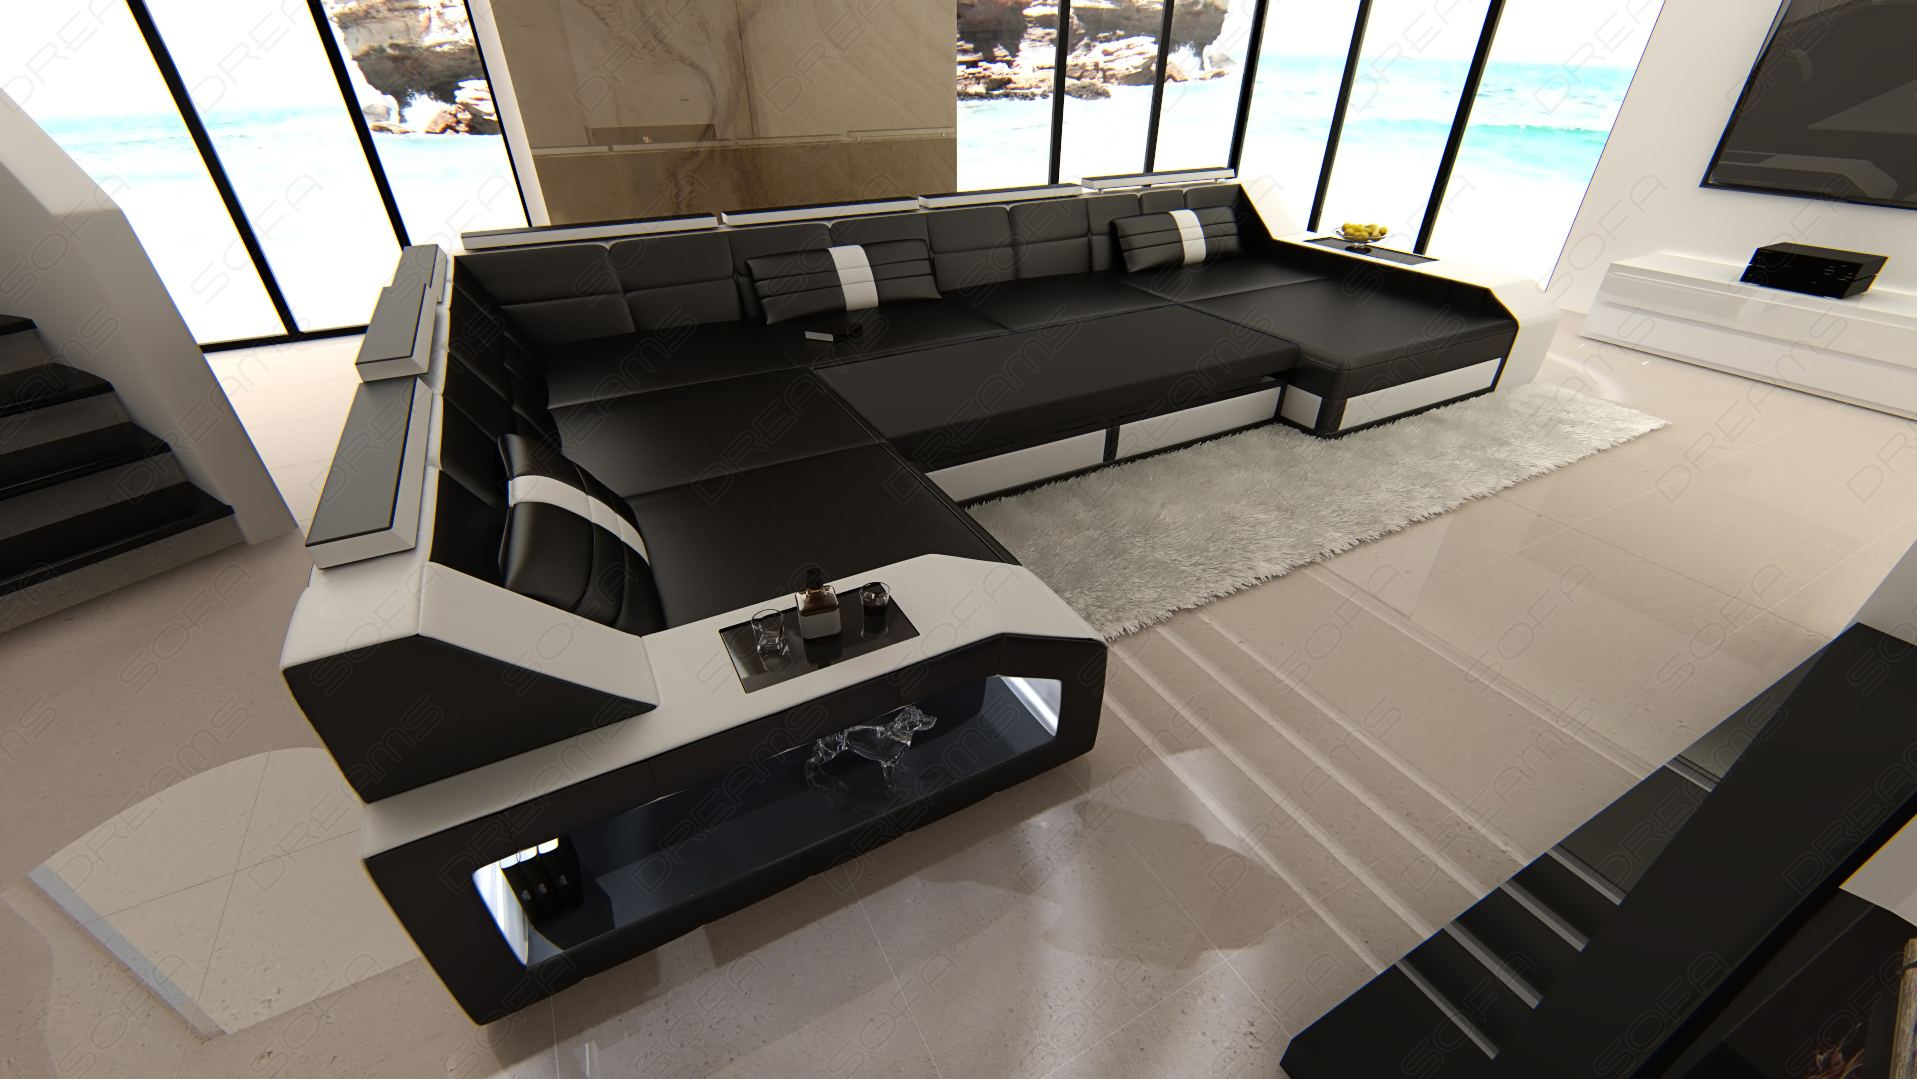 xxl sectional leather sofa matera with led lights colour selection. Black Bedroom Furniture Sets. Home Design Ideas